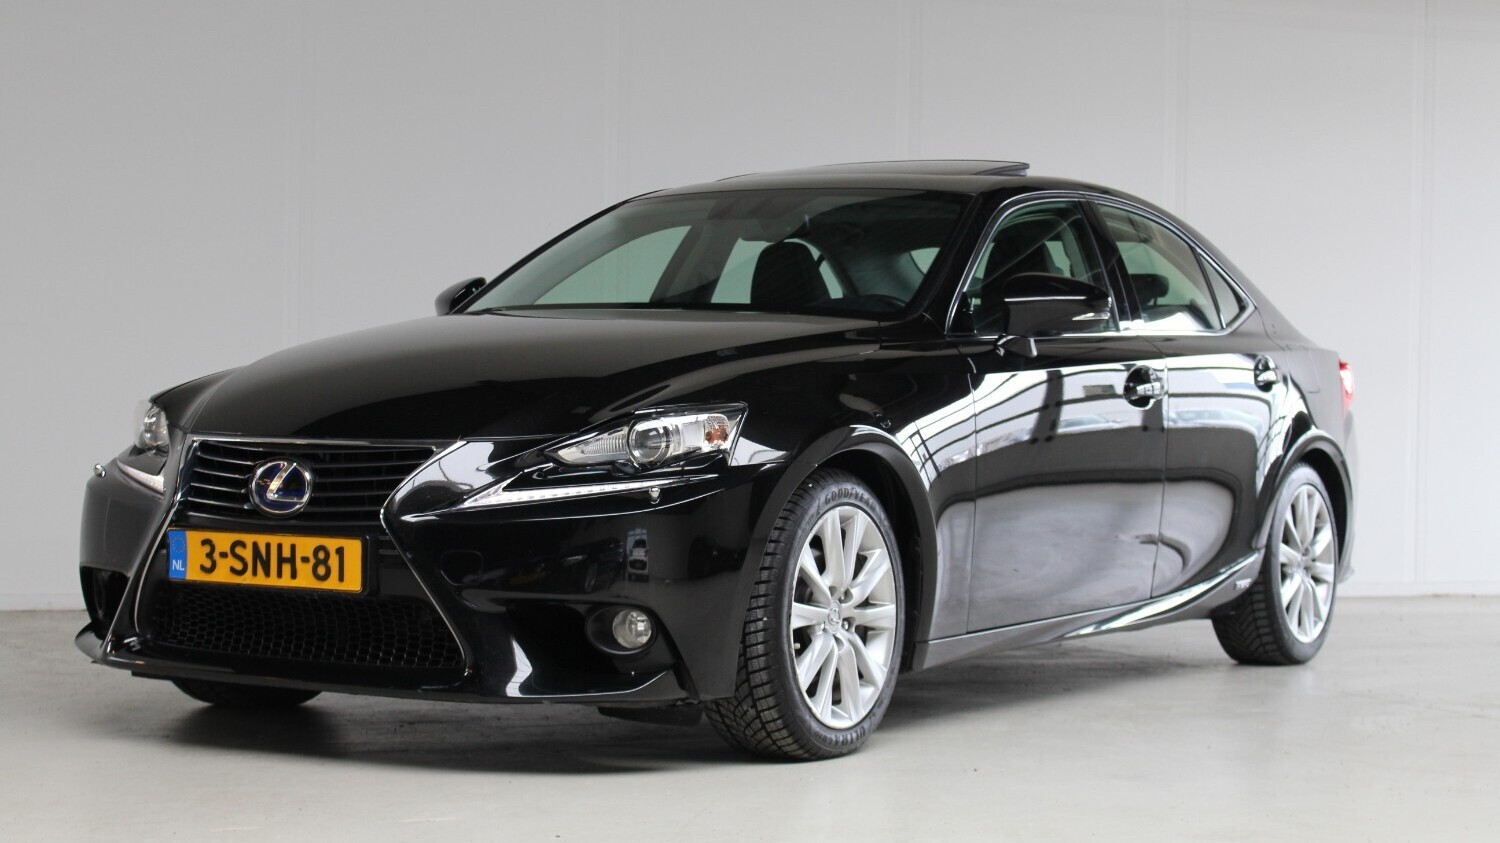 Lexus IS Sedan 2013 3-SNH-81 1